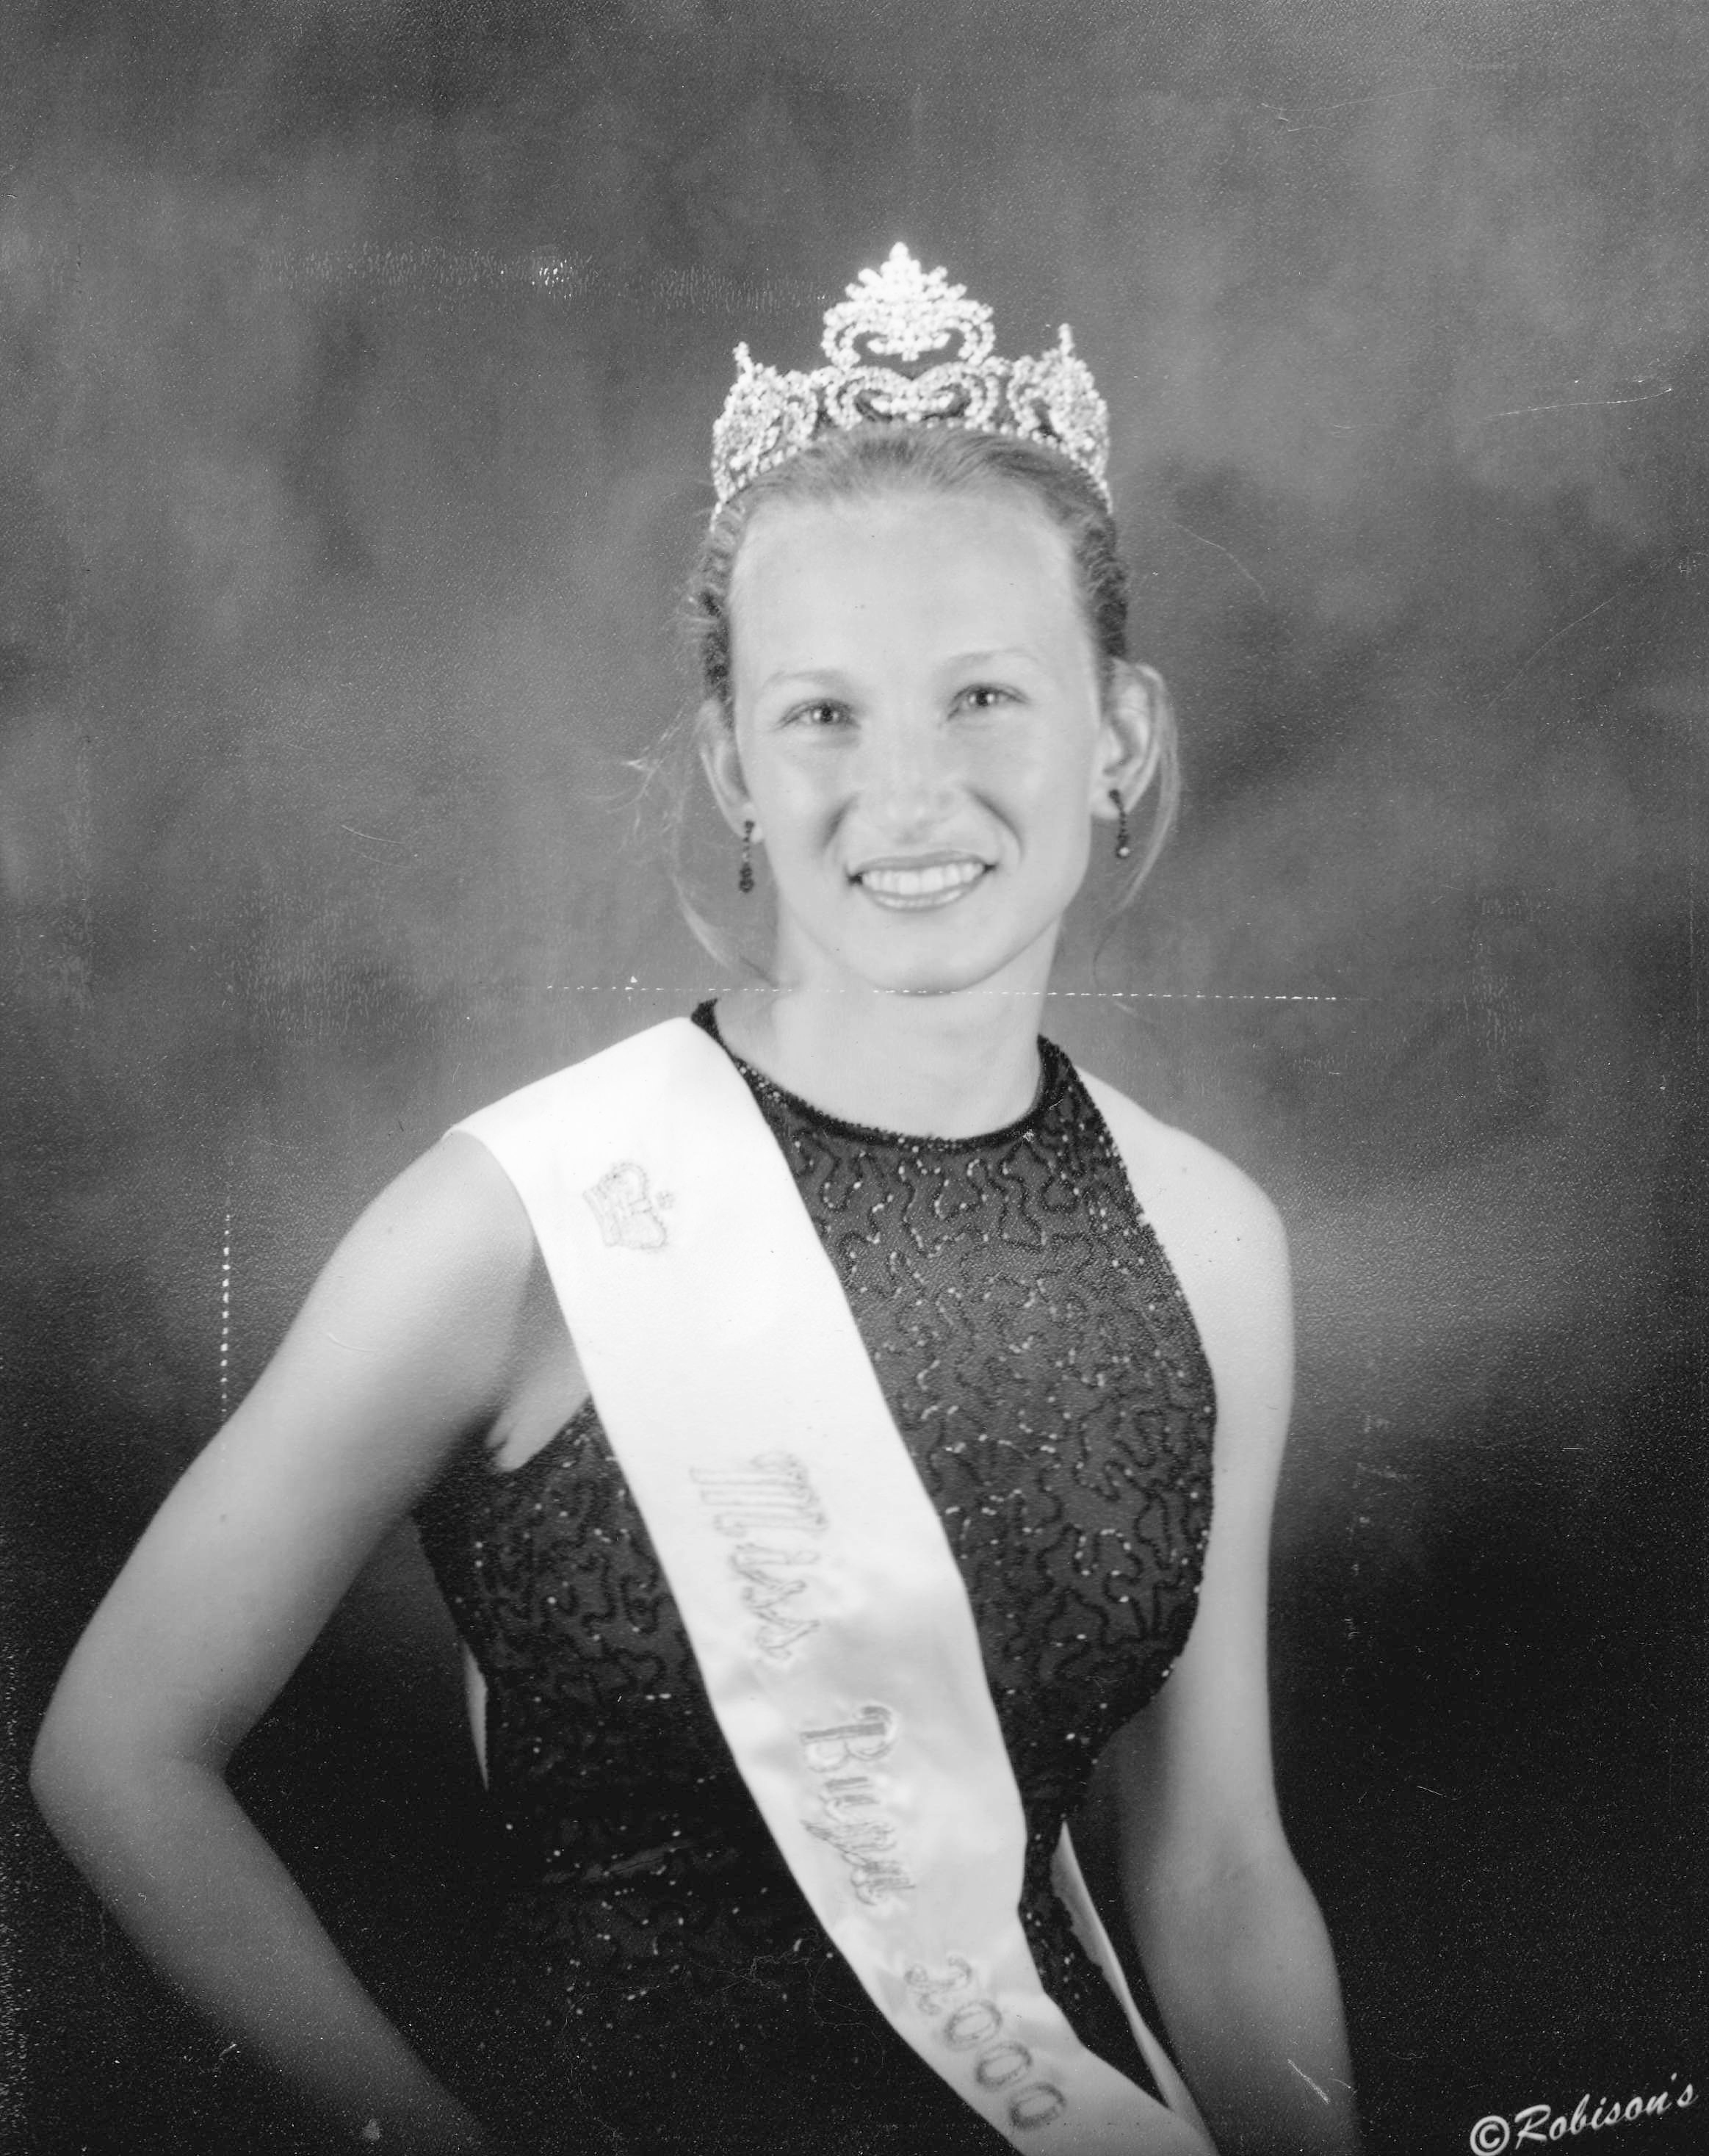 Stacy Sheppard Dewsbury - Miss Buna 2000